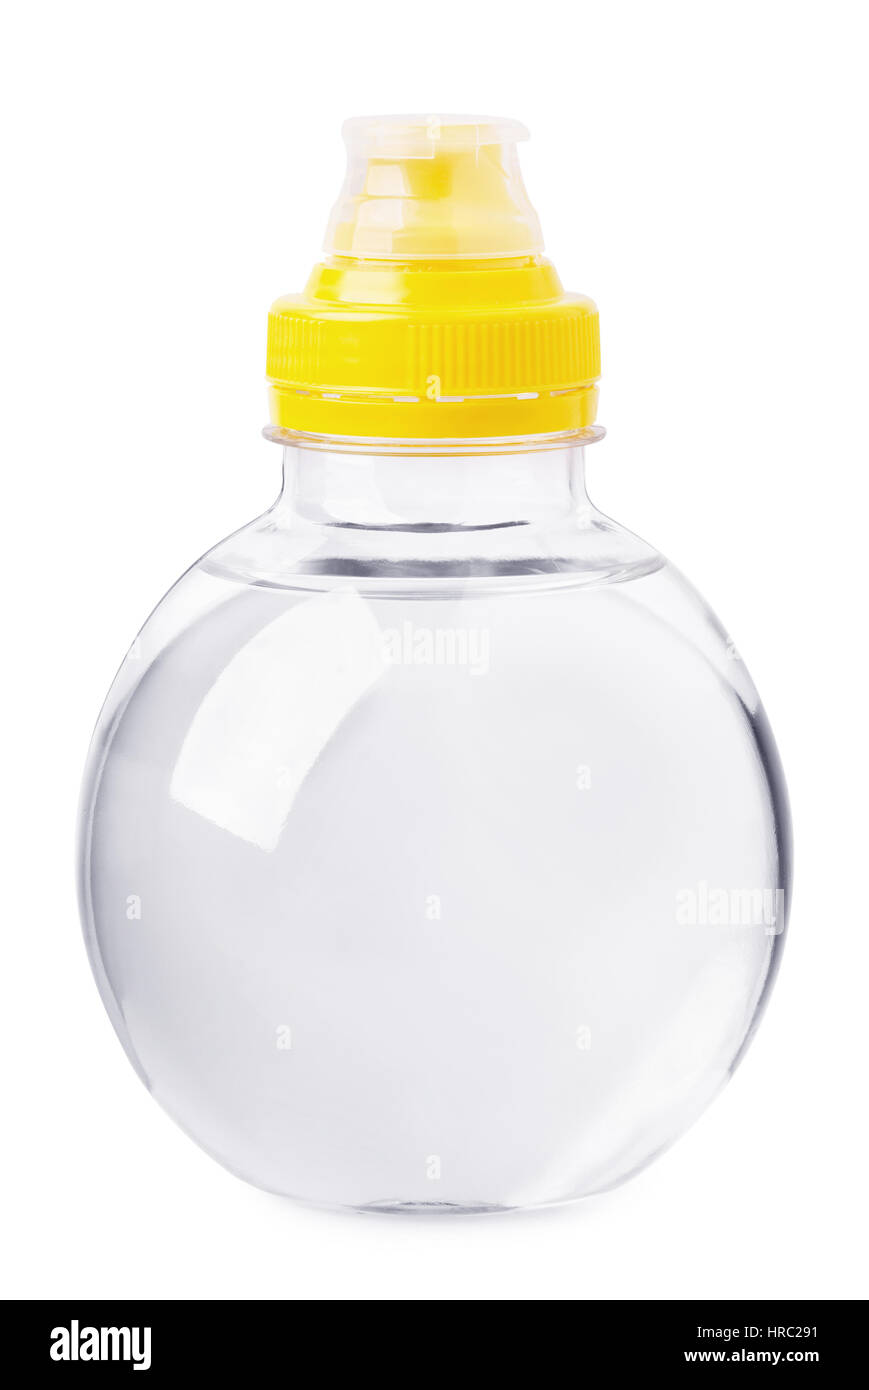 Small water bottle isolated on a white background - Stock Image